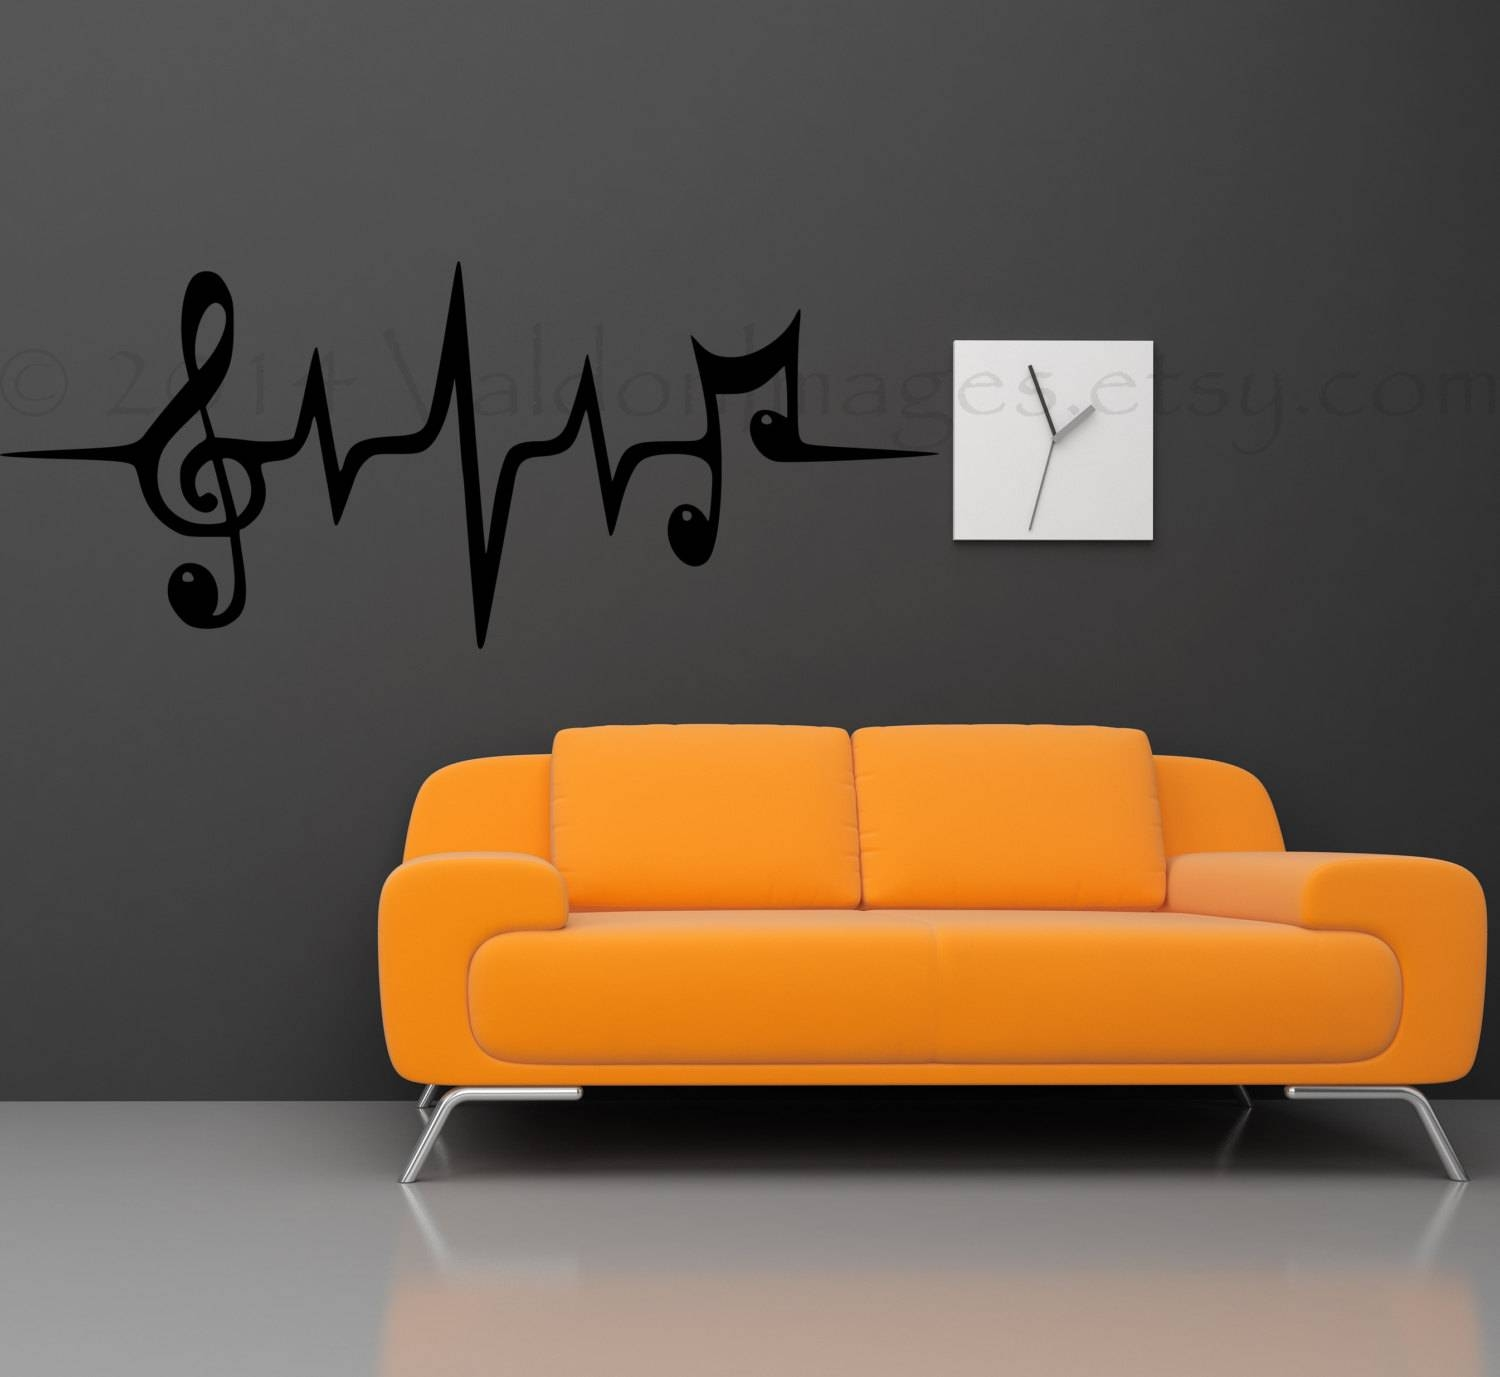 Music Note Wall Decal Music Wall Decal Heartbeat Wall Inside 2017 Music Note Art For Walls (View 2 of 25)